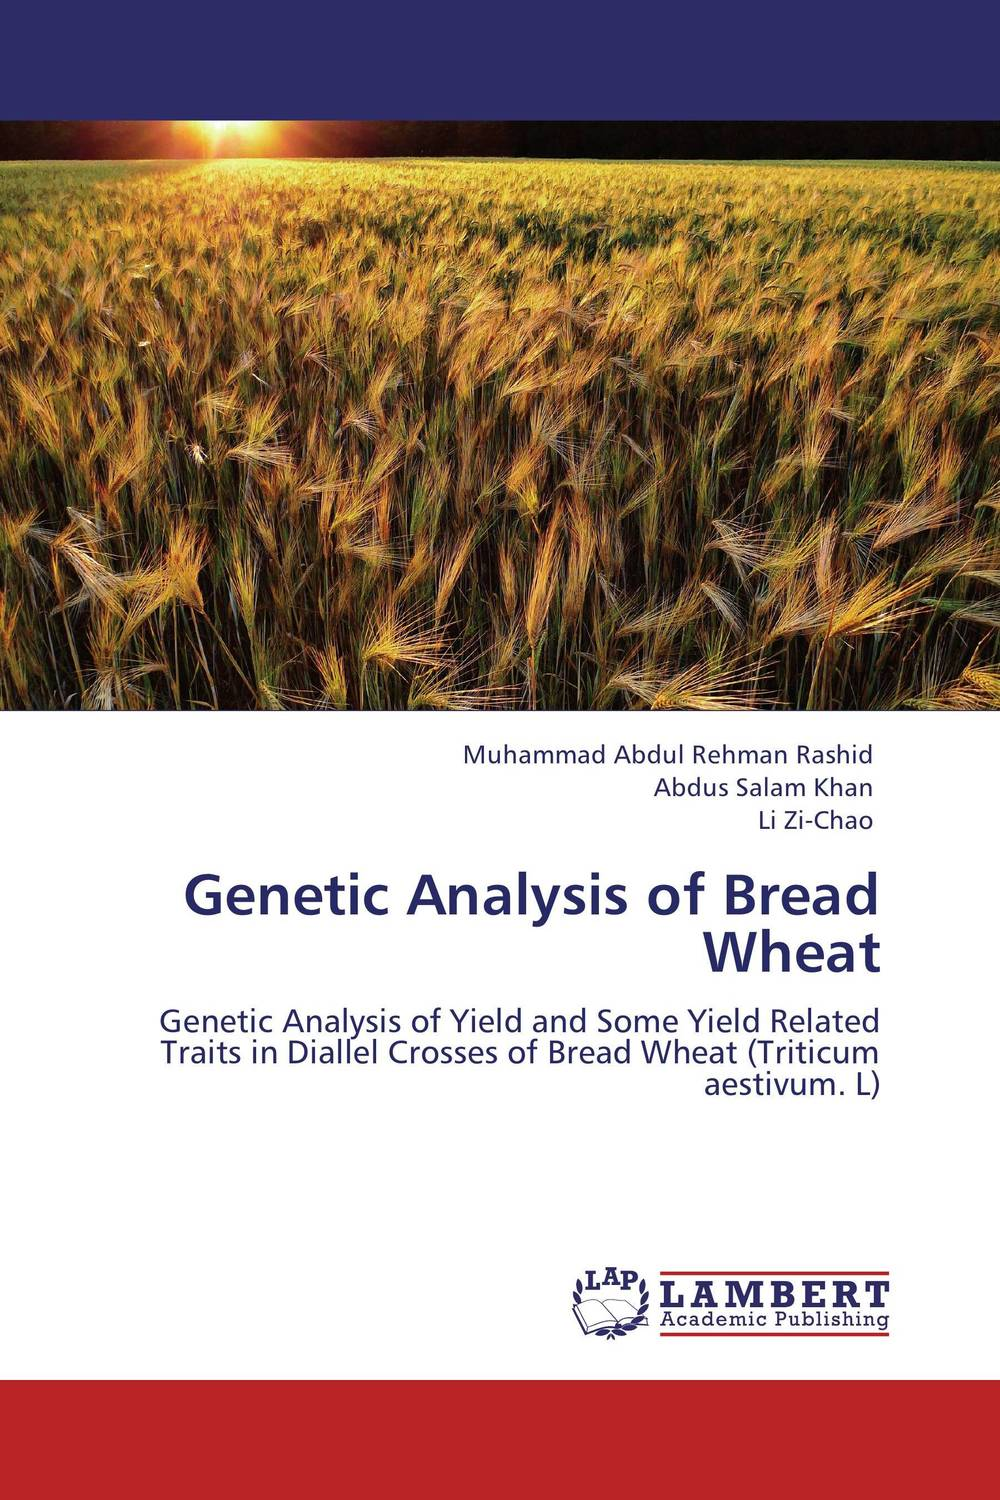 Genetic Analysis of Bread Wheat evaluation of lucern as a predator source for wheat aphids